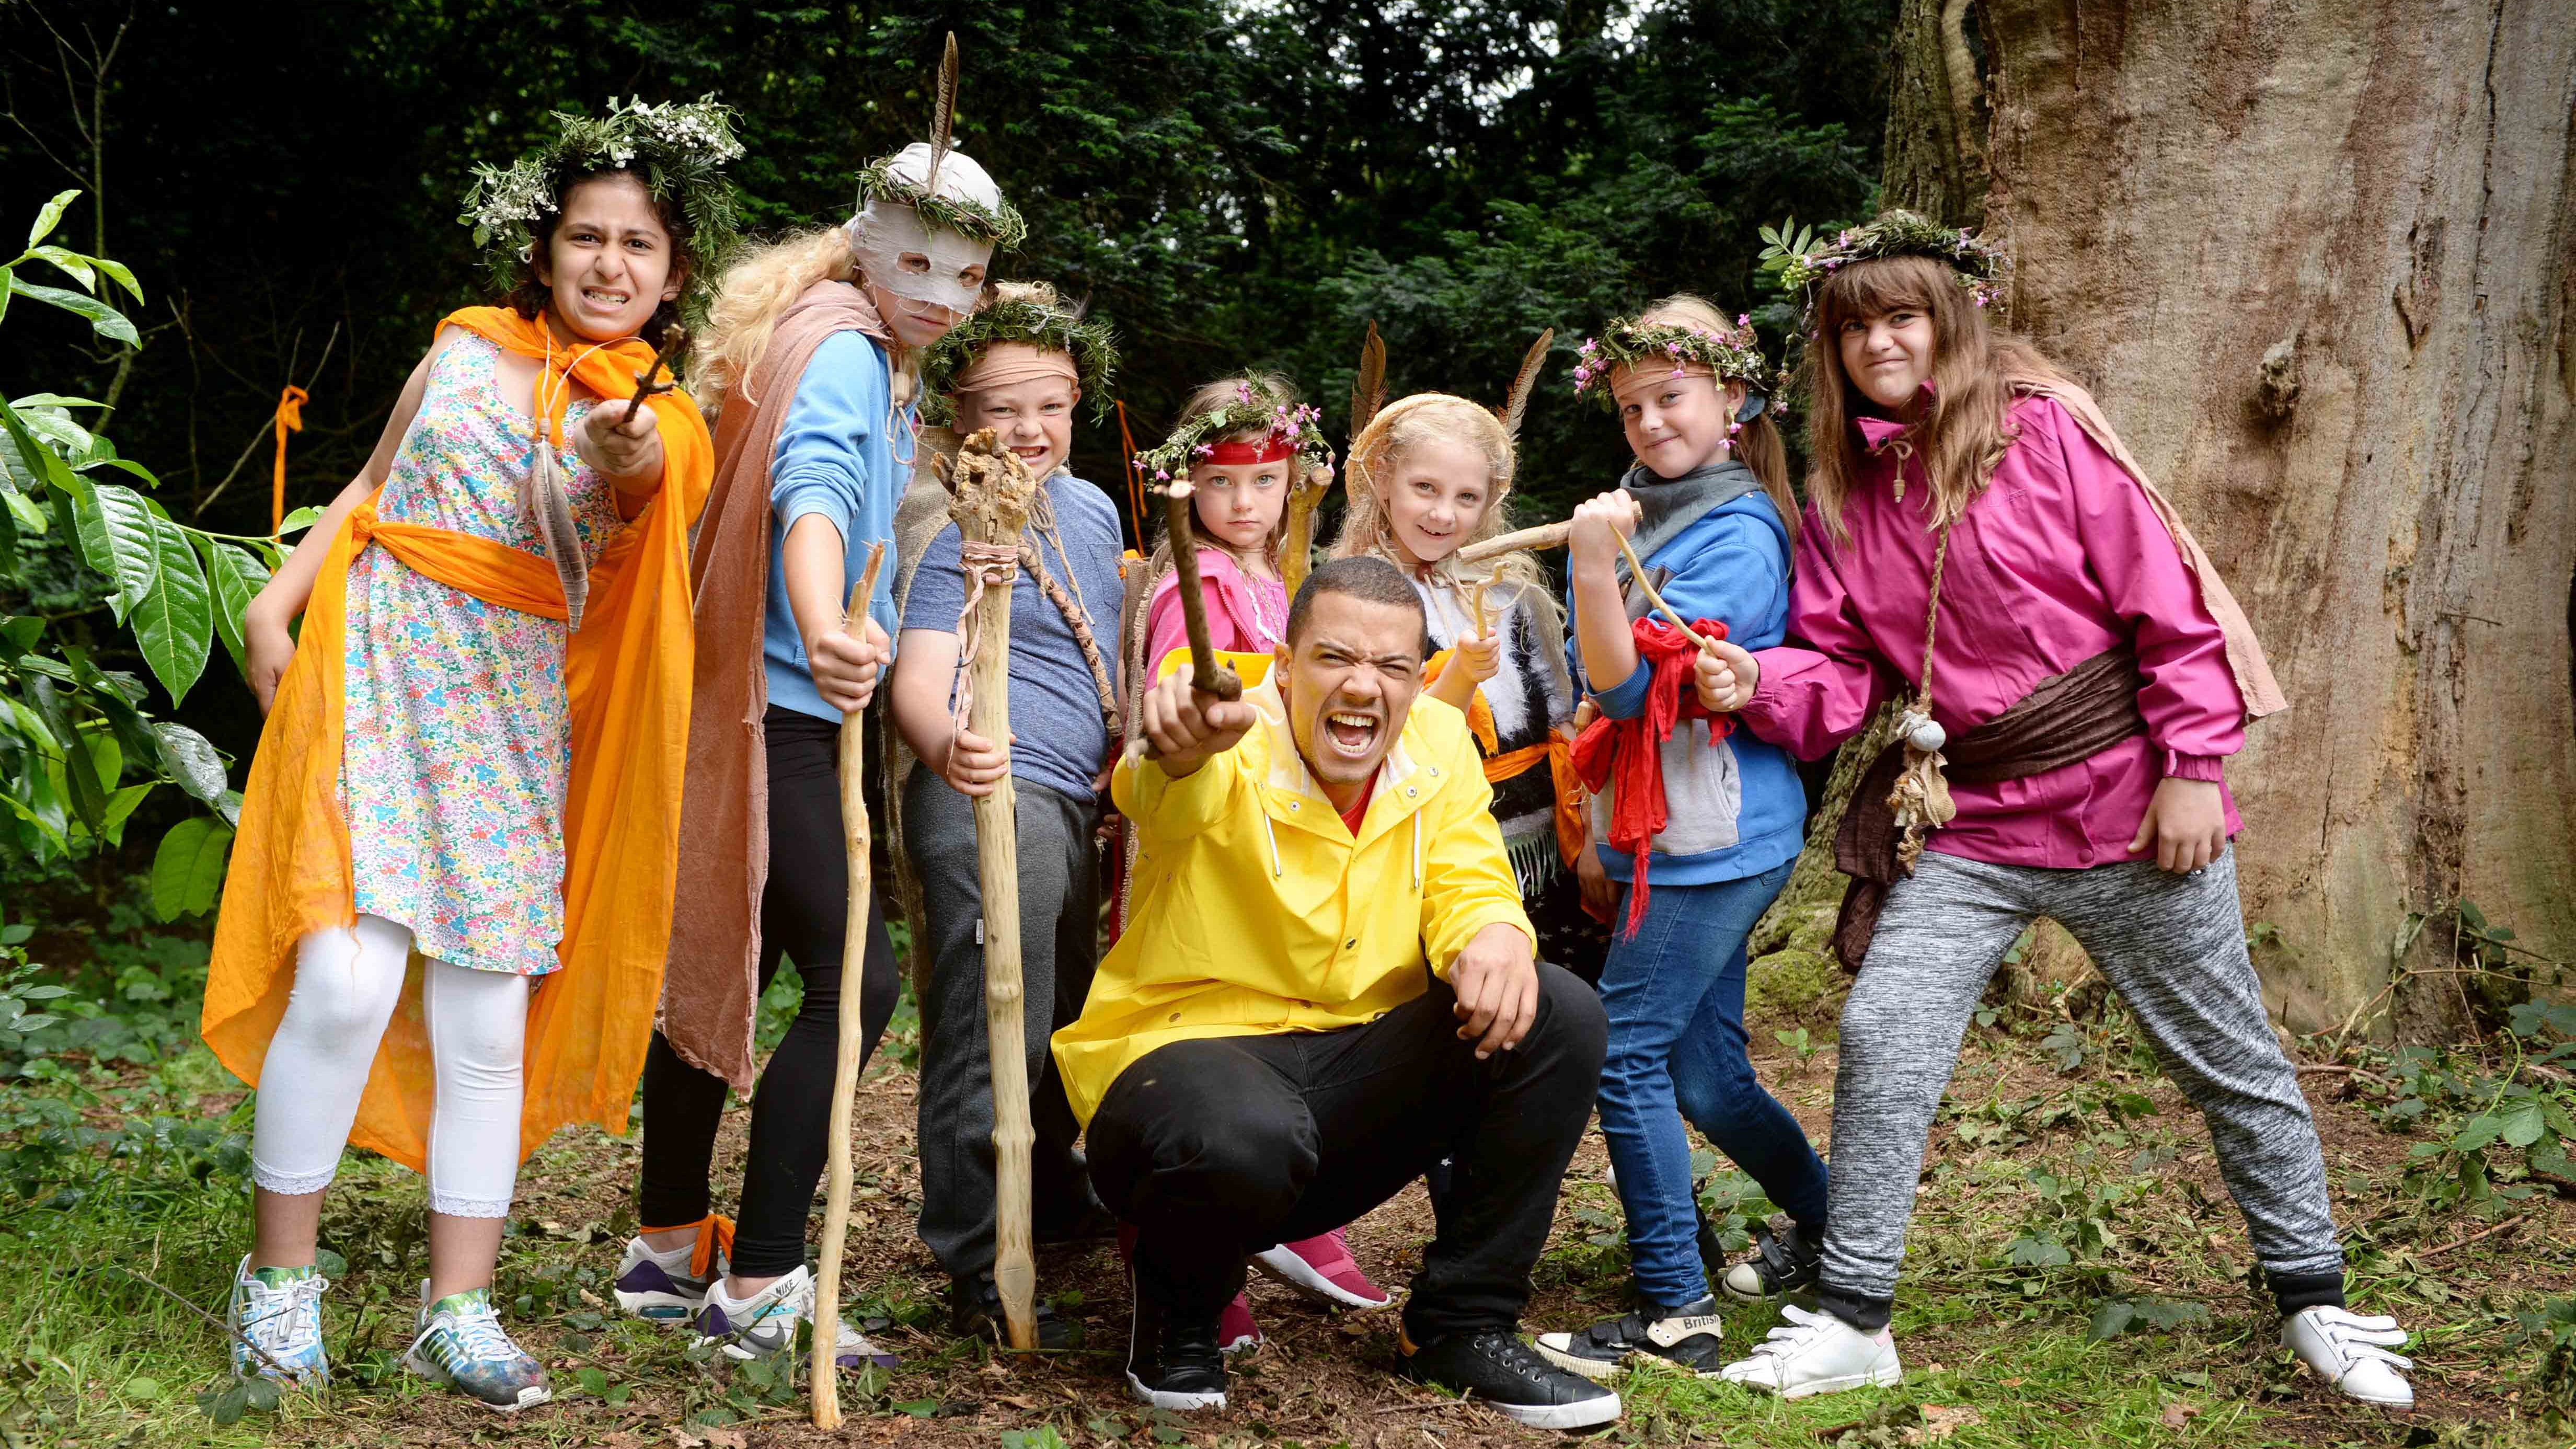 Raleigh Ritchie and a gang of young adventurers